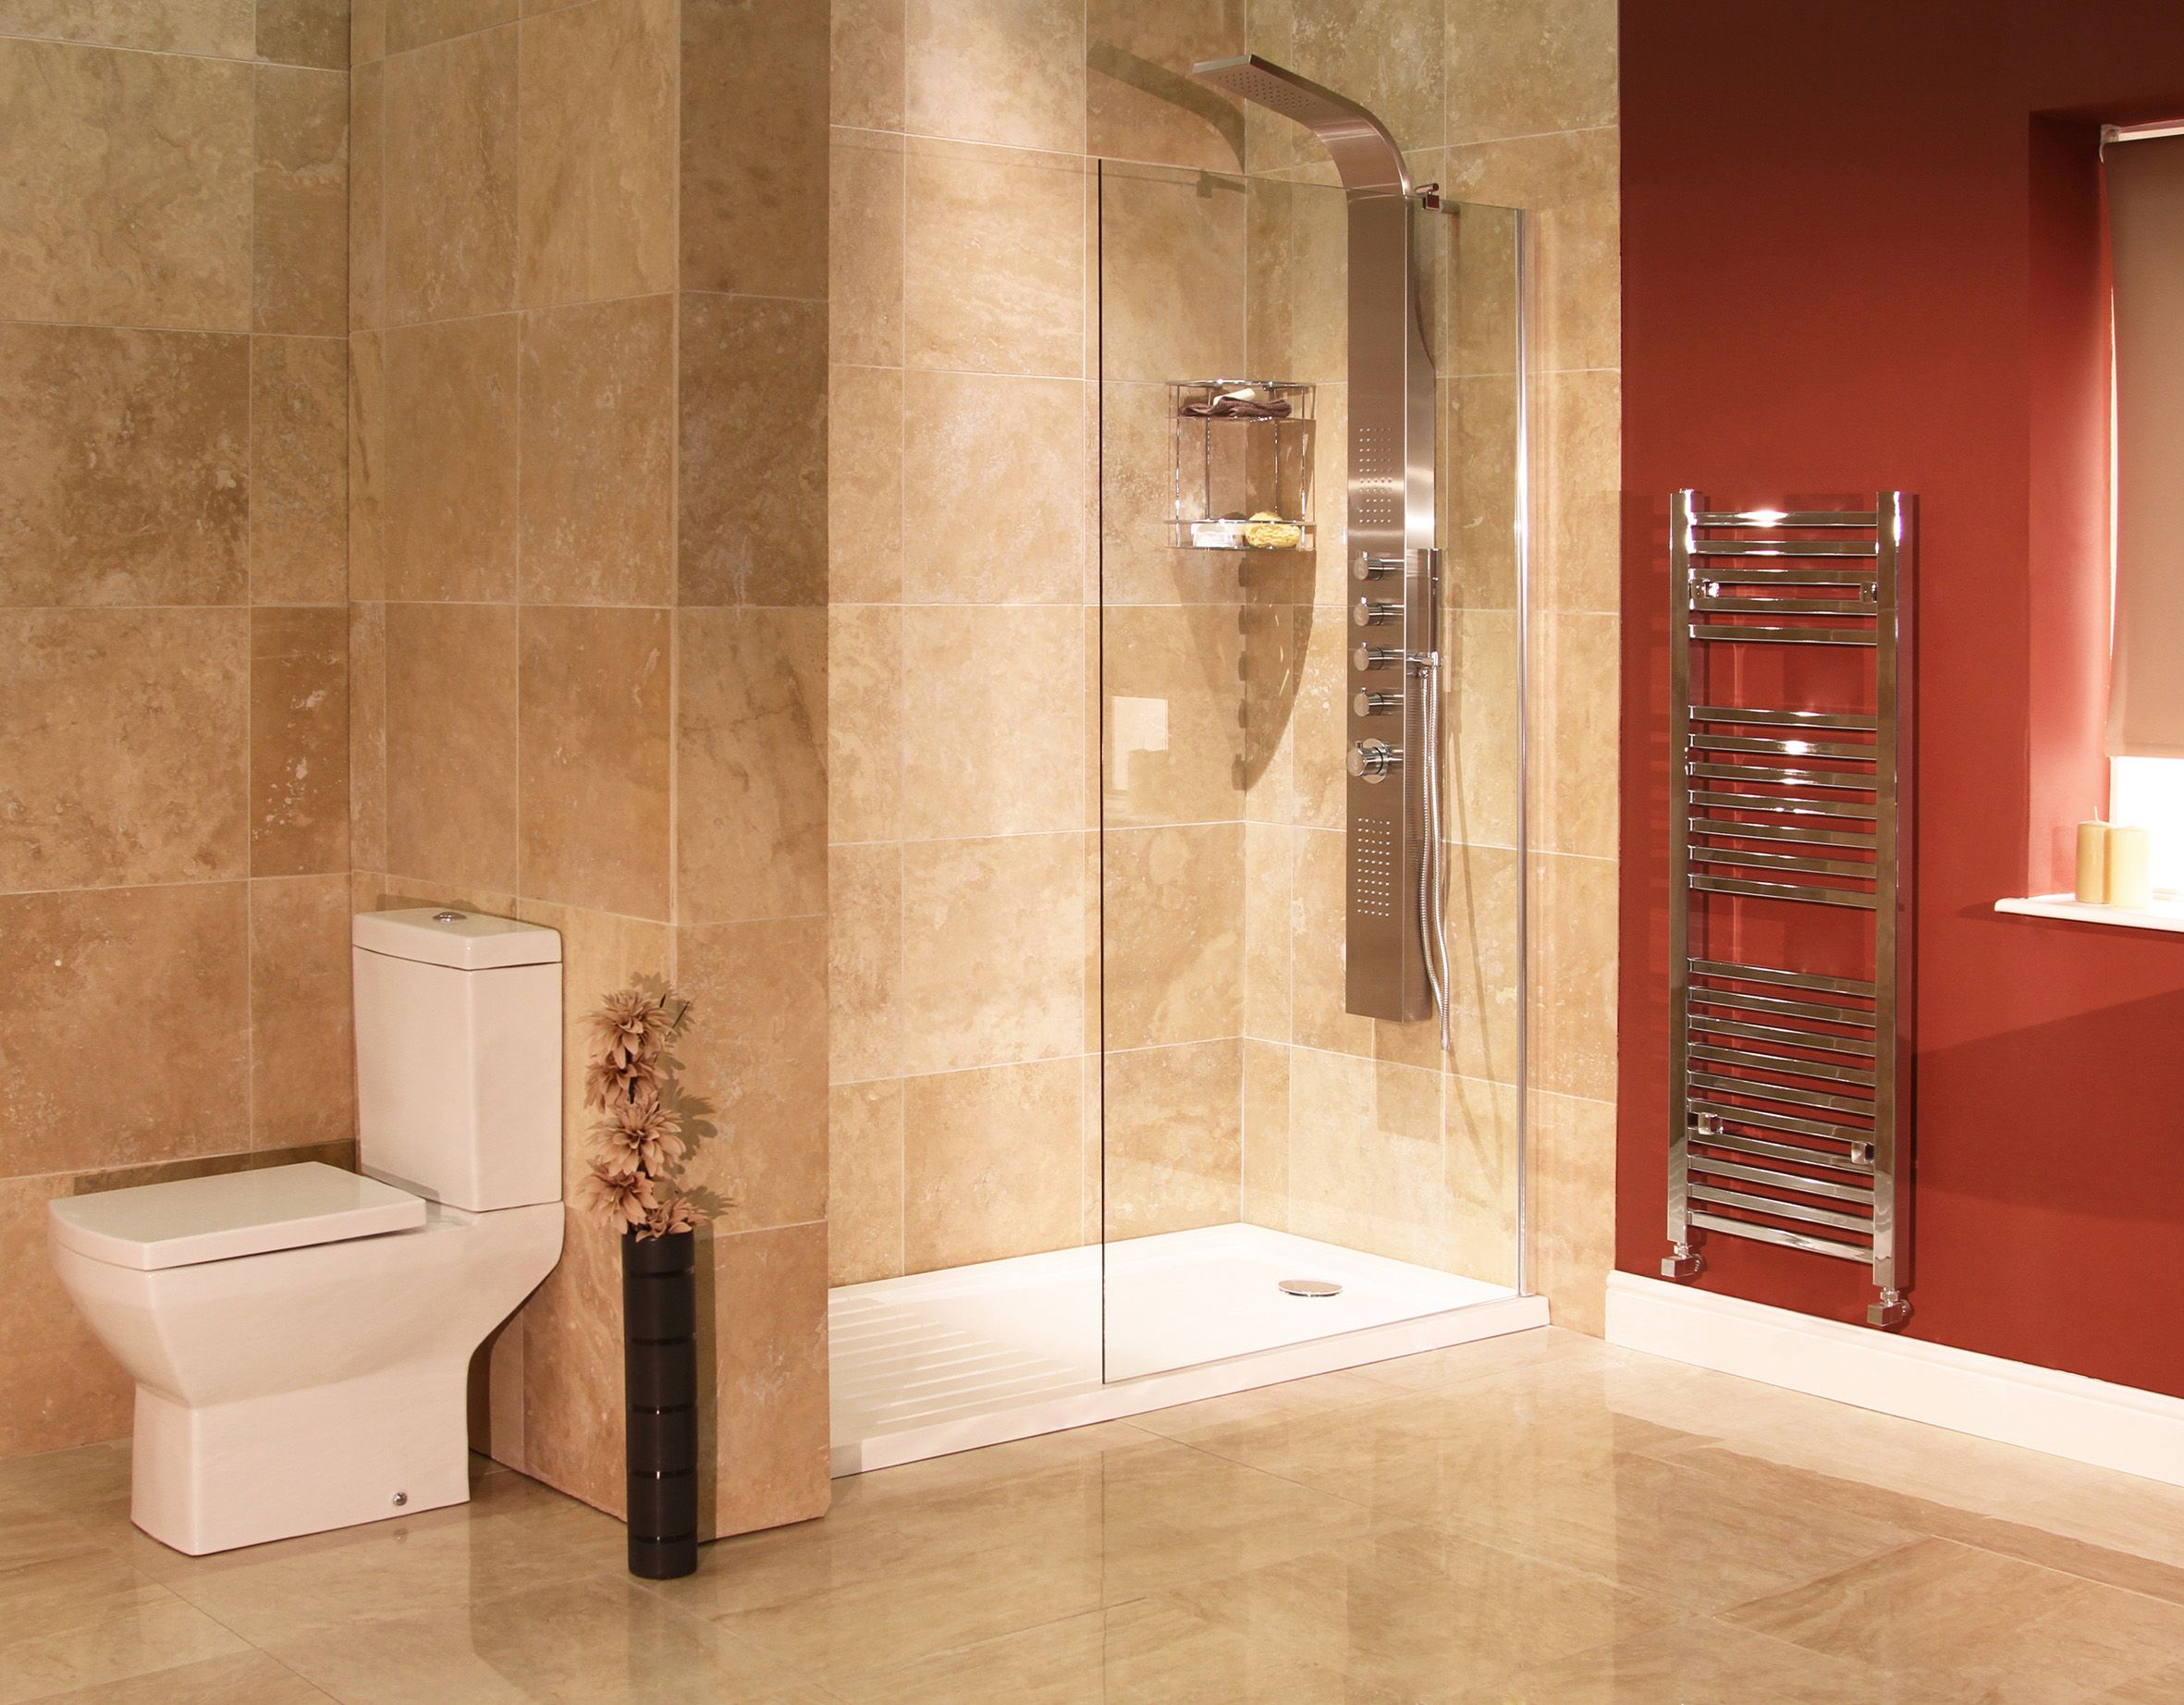 A stunning 'Walk In Wet Room' design courtesy of